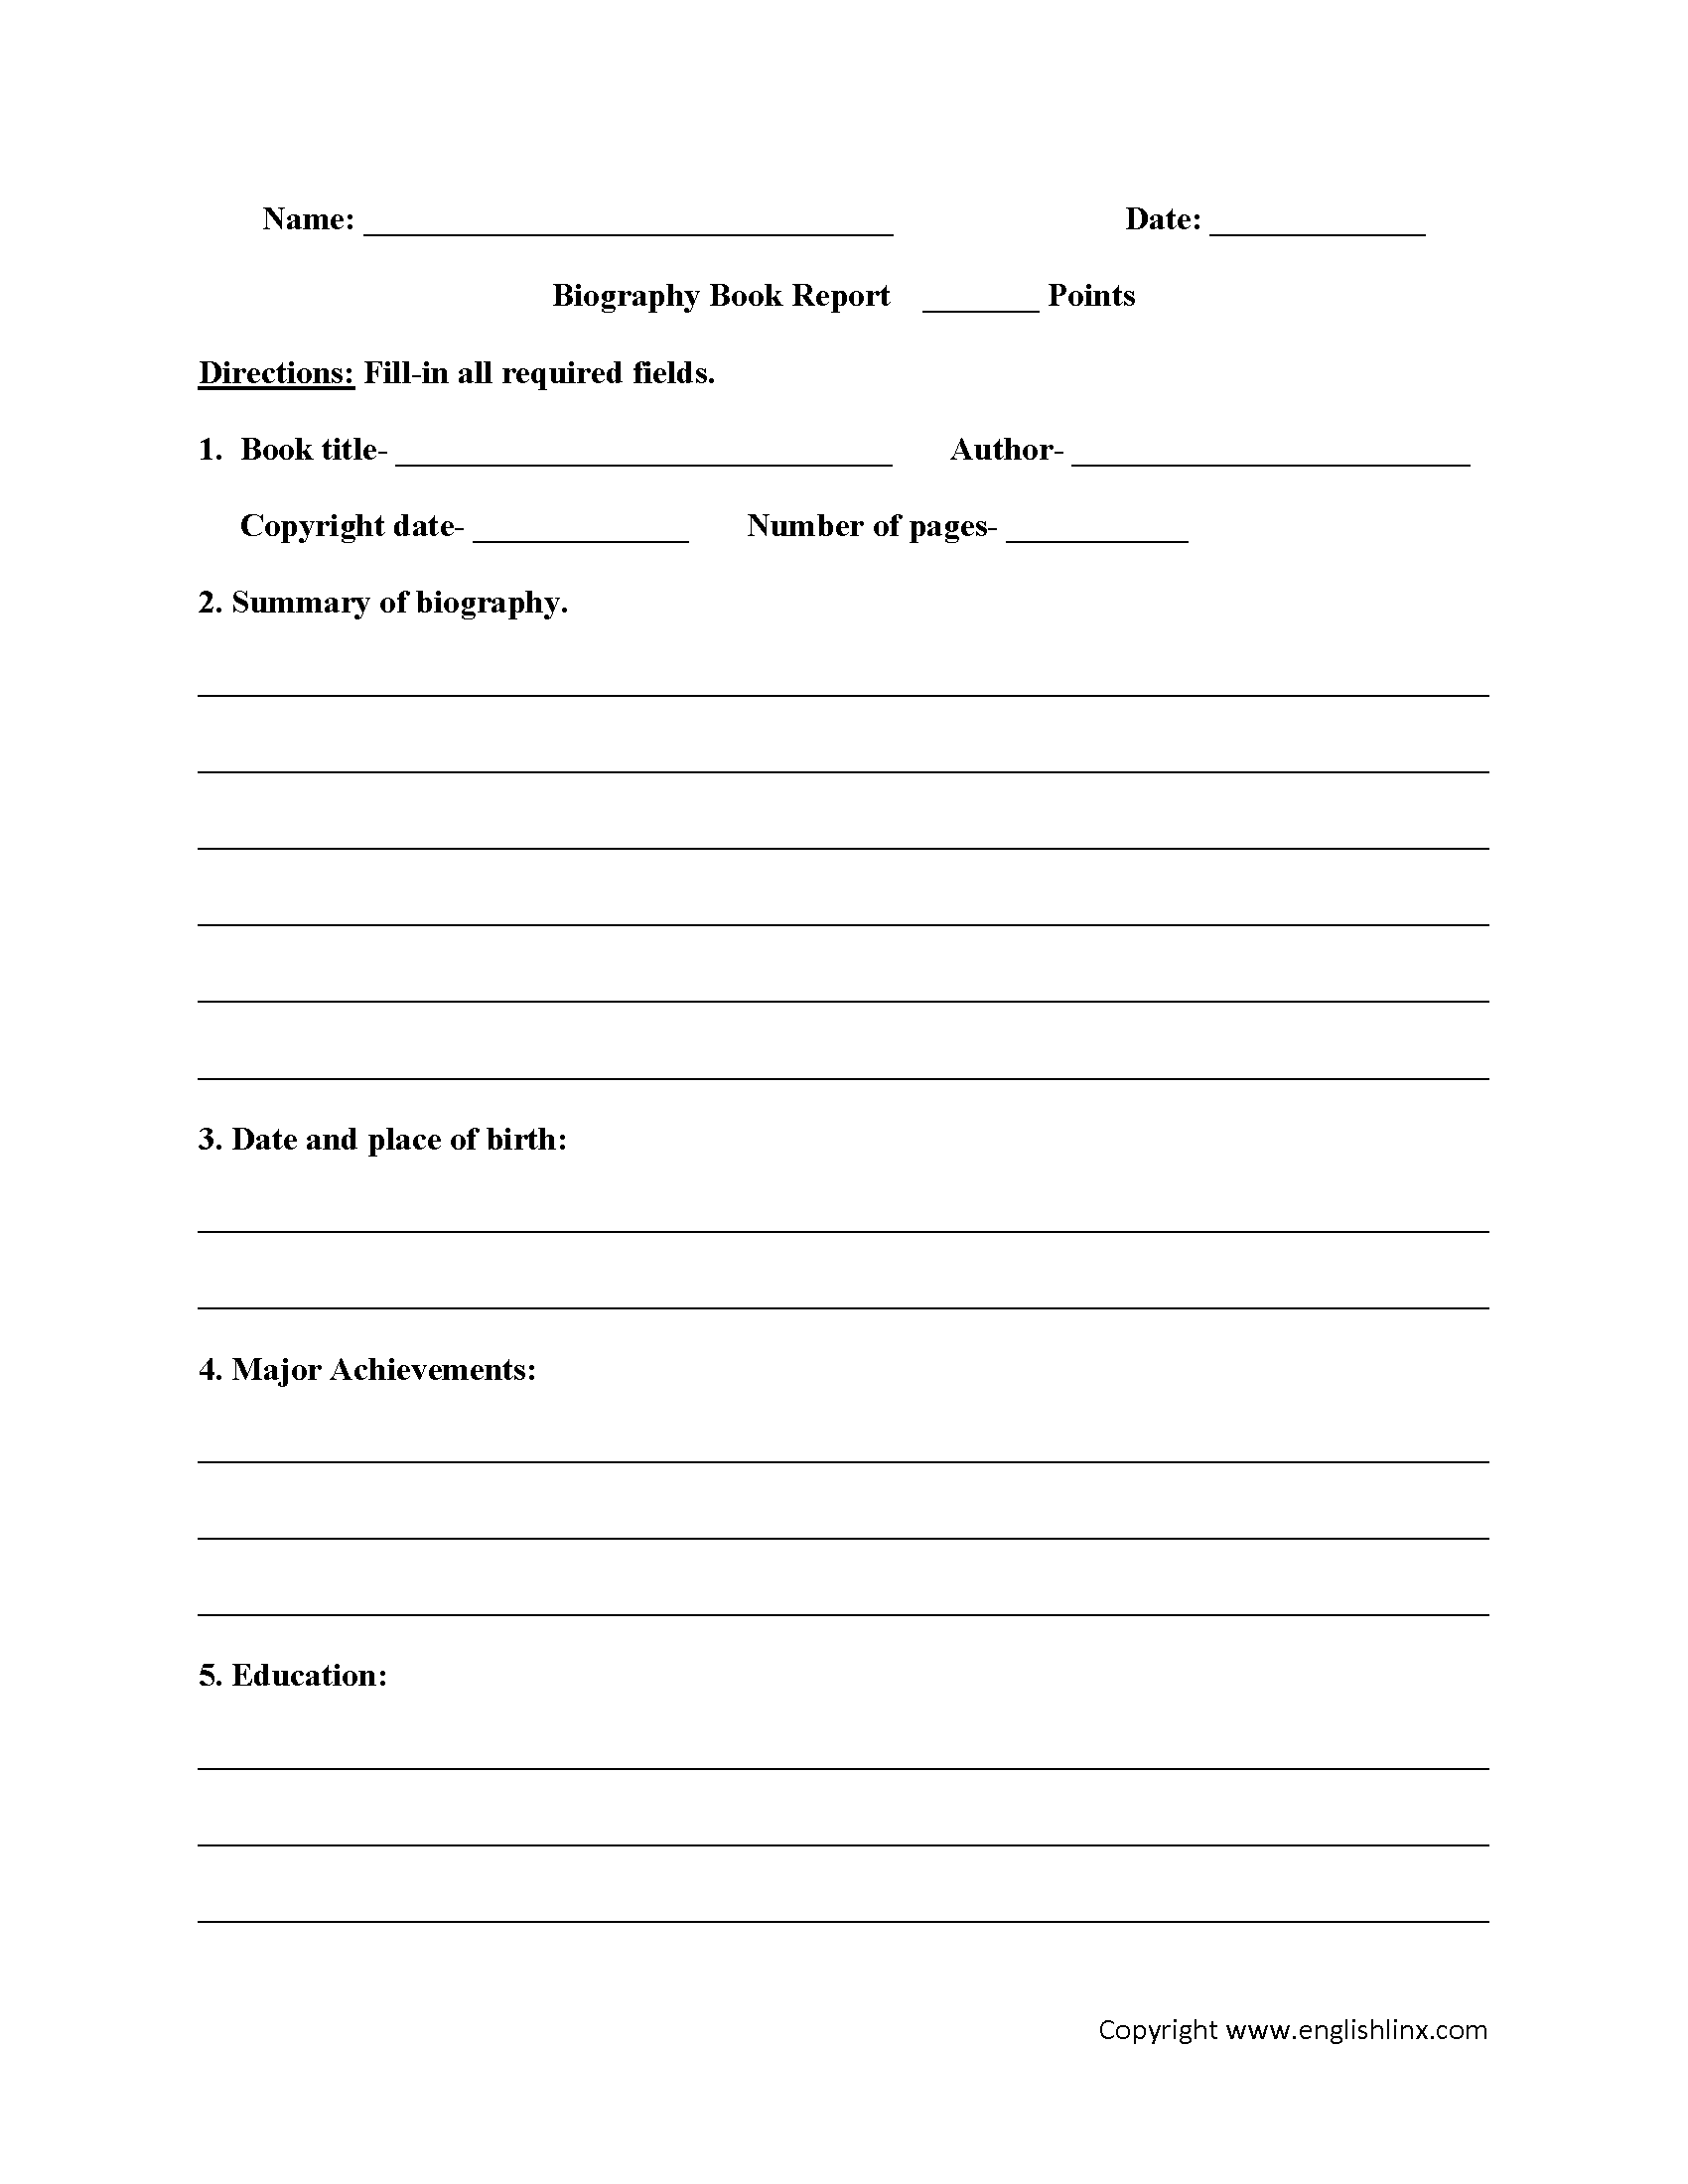 Book Report Worksheets | Biography Book Report Worksheets